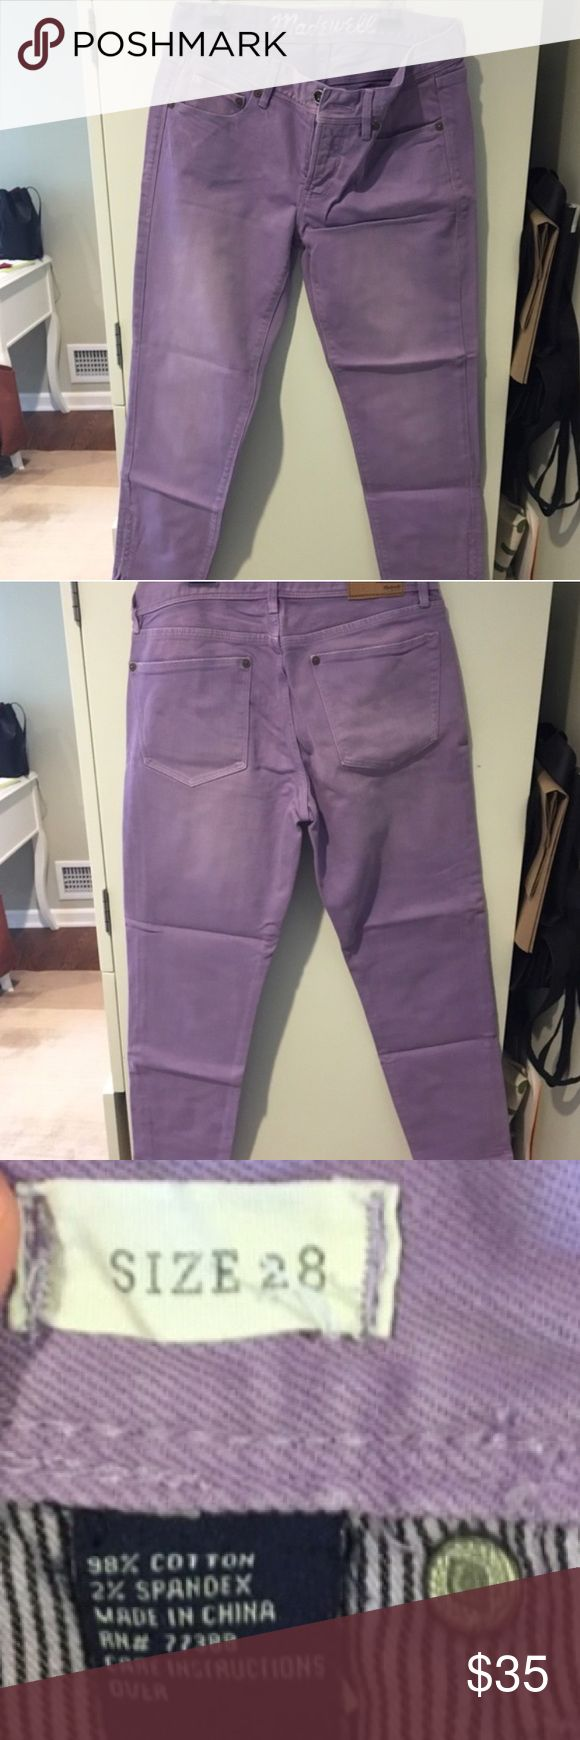 "Madewell Lavender Ankle Zip Jeans REPOSH. Like-new condition. 25"" inseam. (photo cred: gra627) Madewell Jeans Ankle & Cropped"